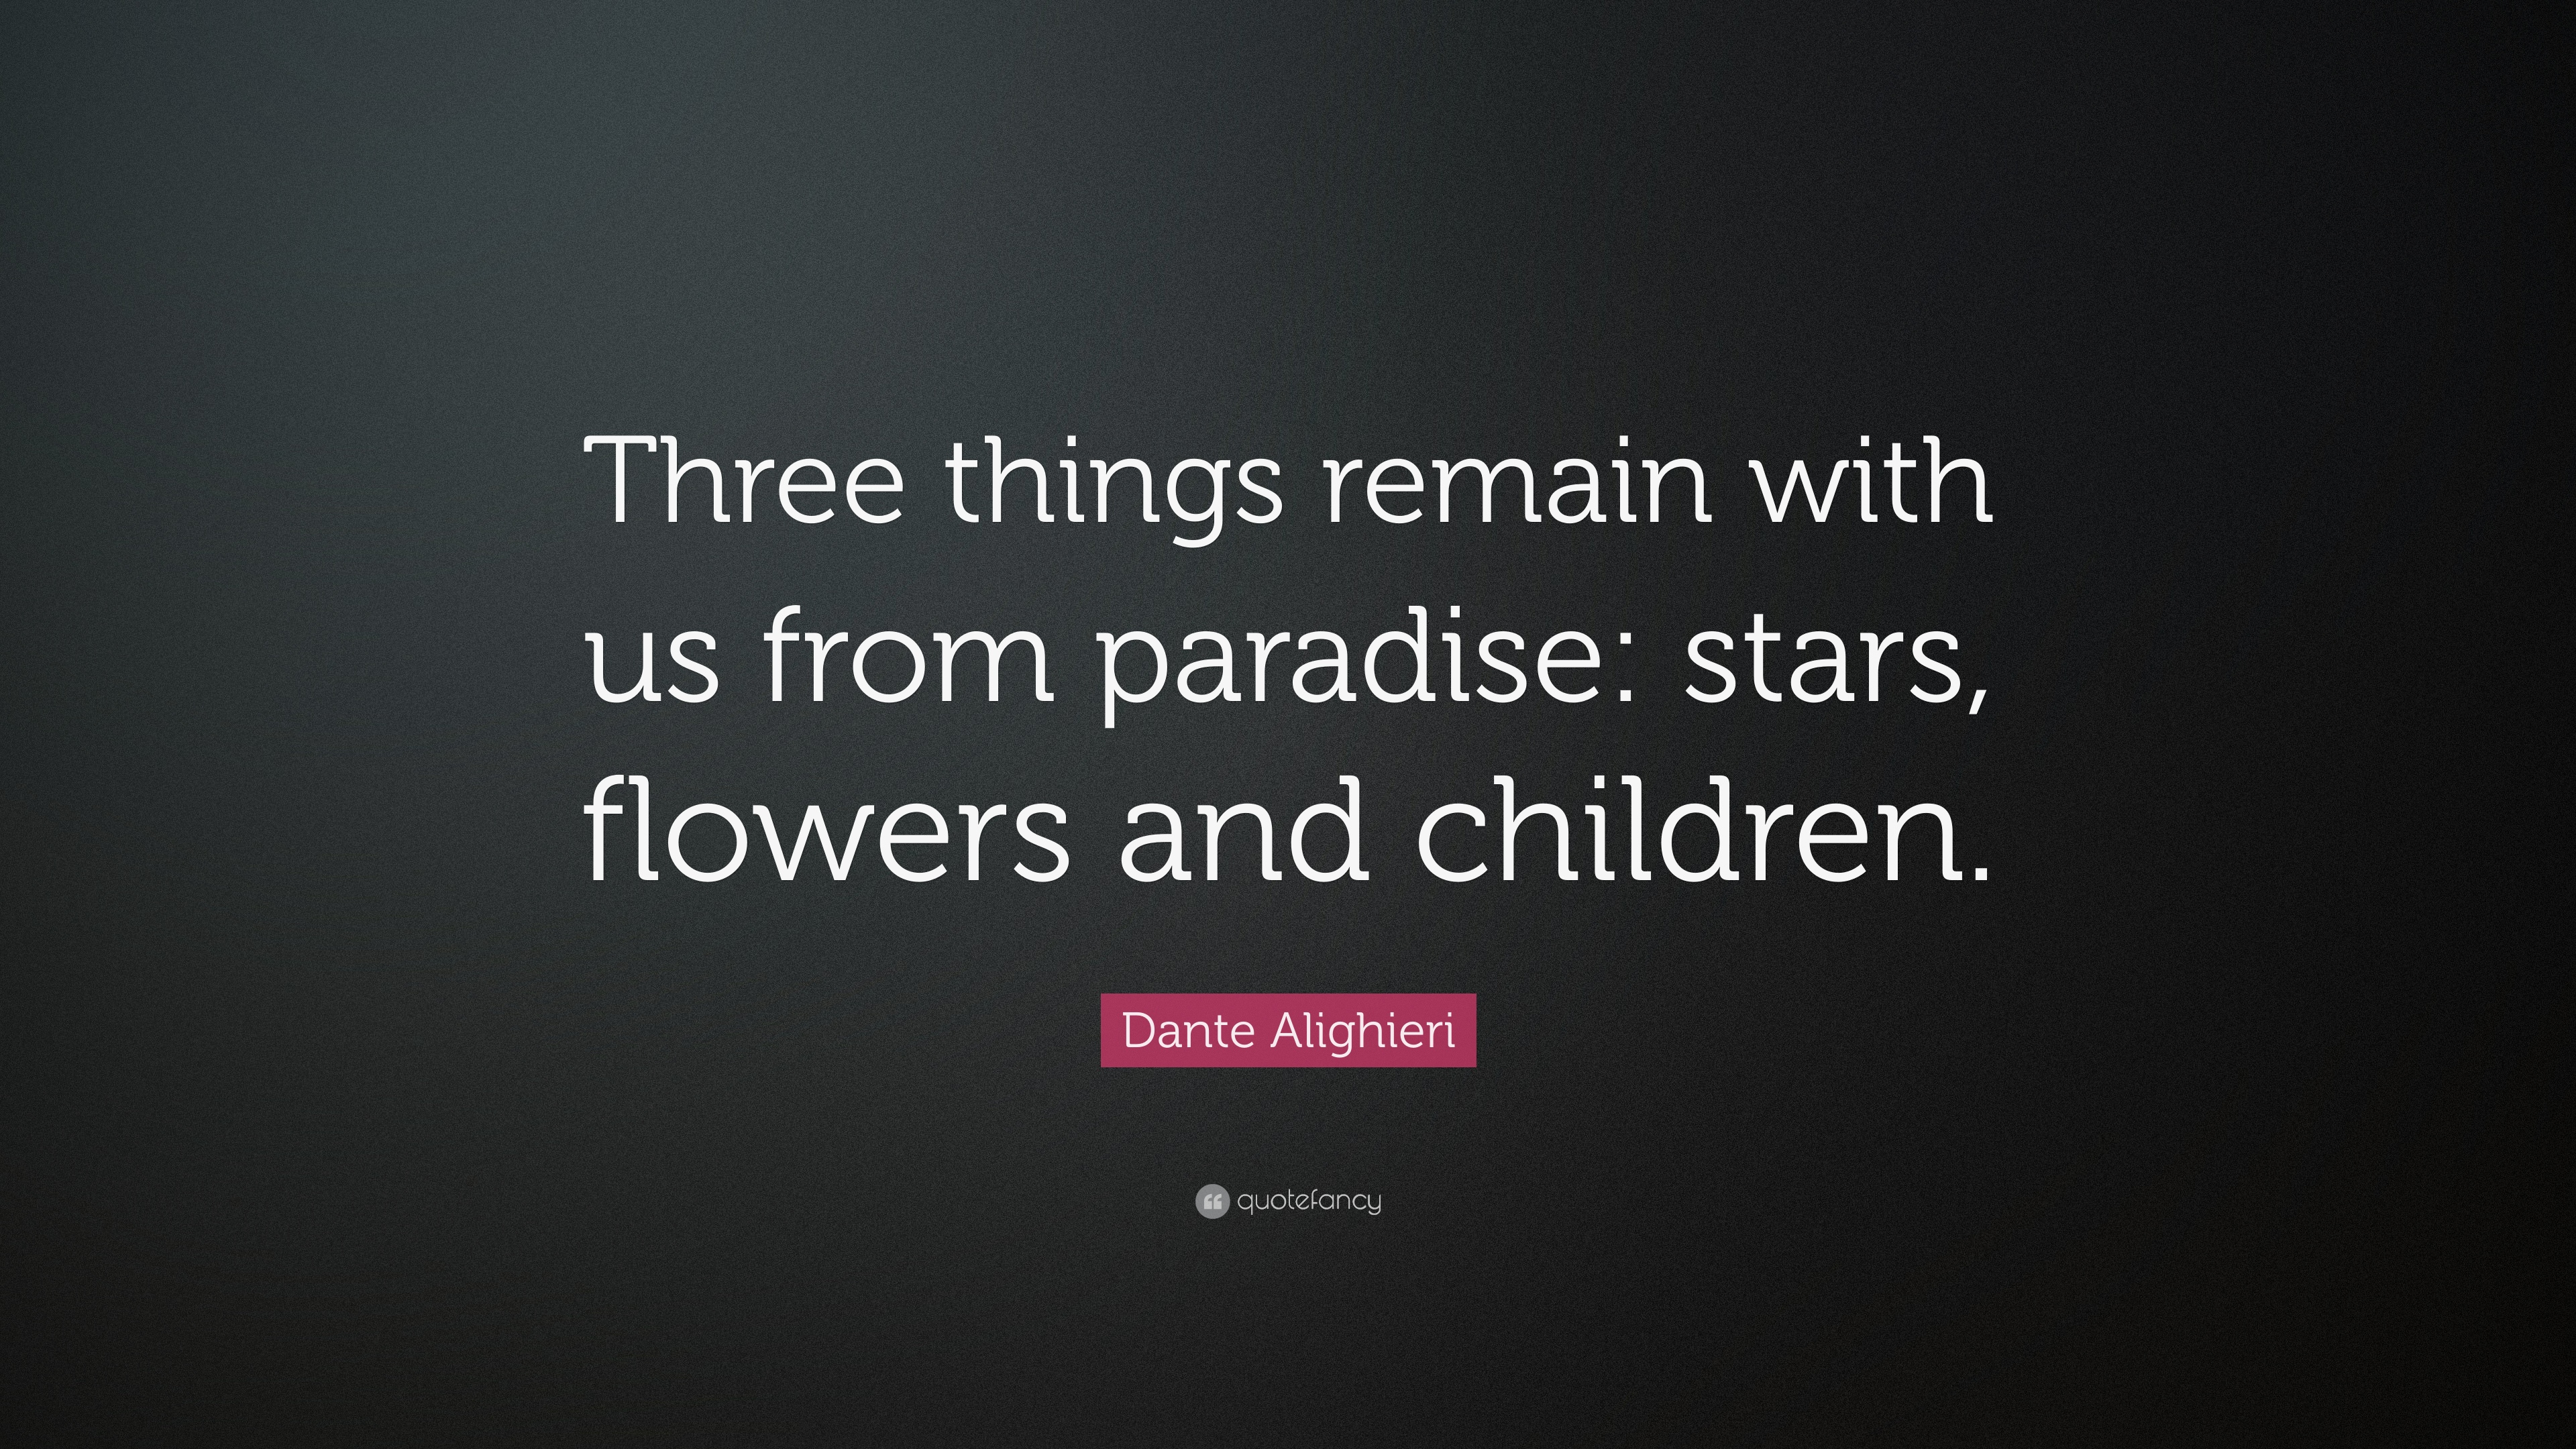 Dante Alighieri Quote Three Things Remain With Us From Paradise Stars Flowers